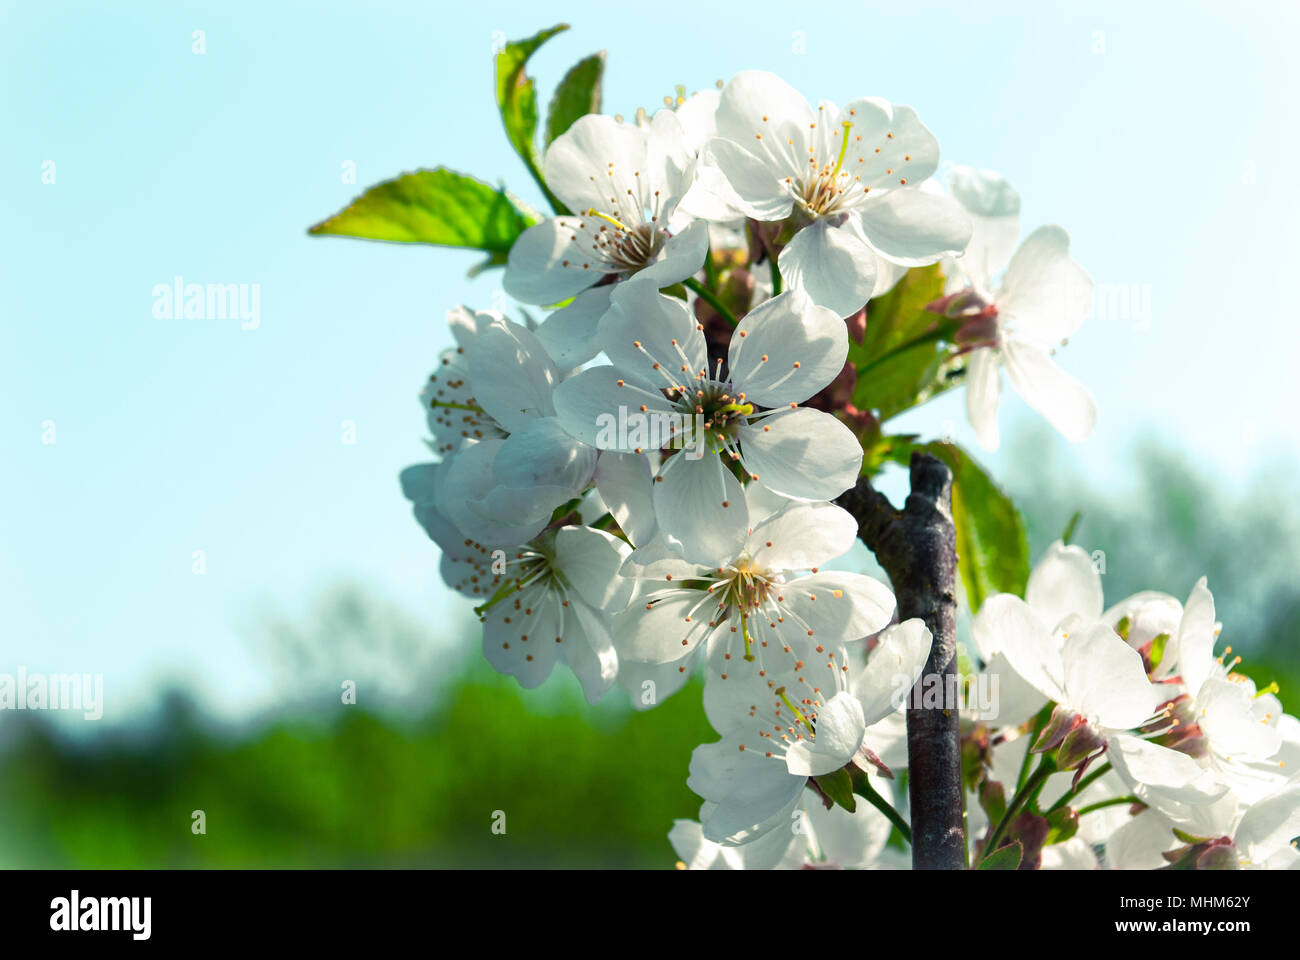 Cherry Blossom Sakura Flowers Isolated On Blue And Green Background